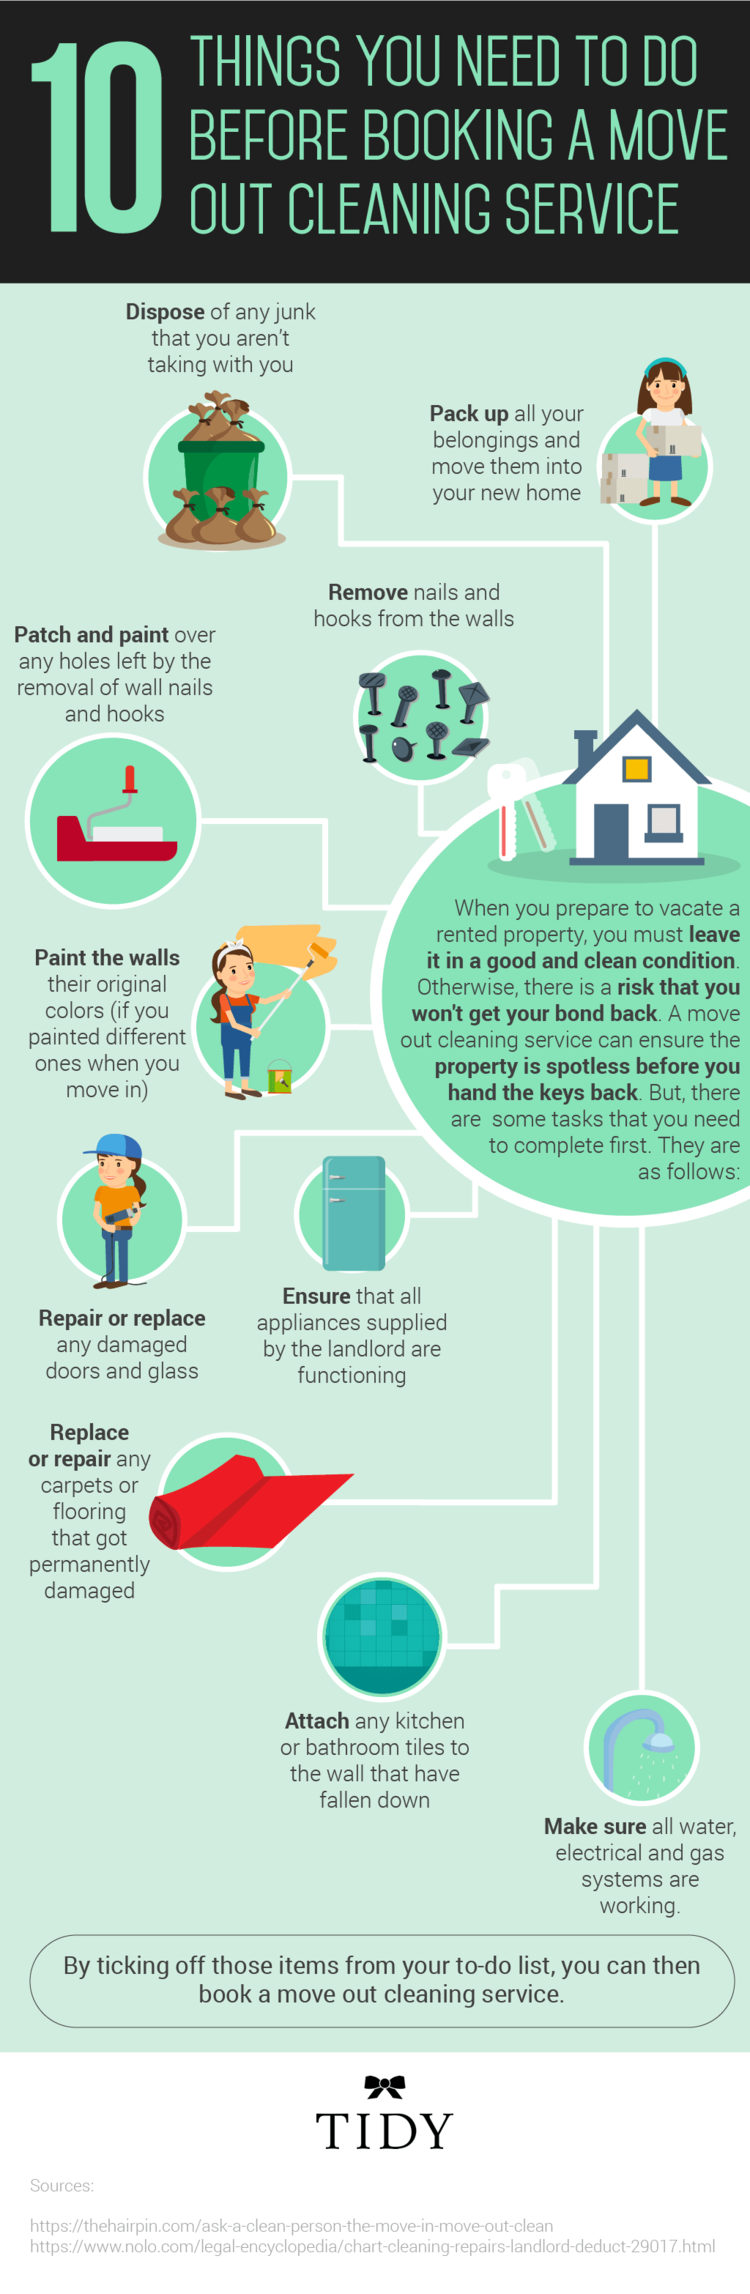 10 Things To Do Before Booking a Move Out Cleaning Service